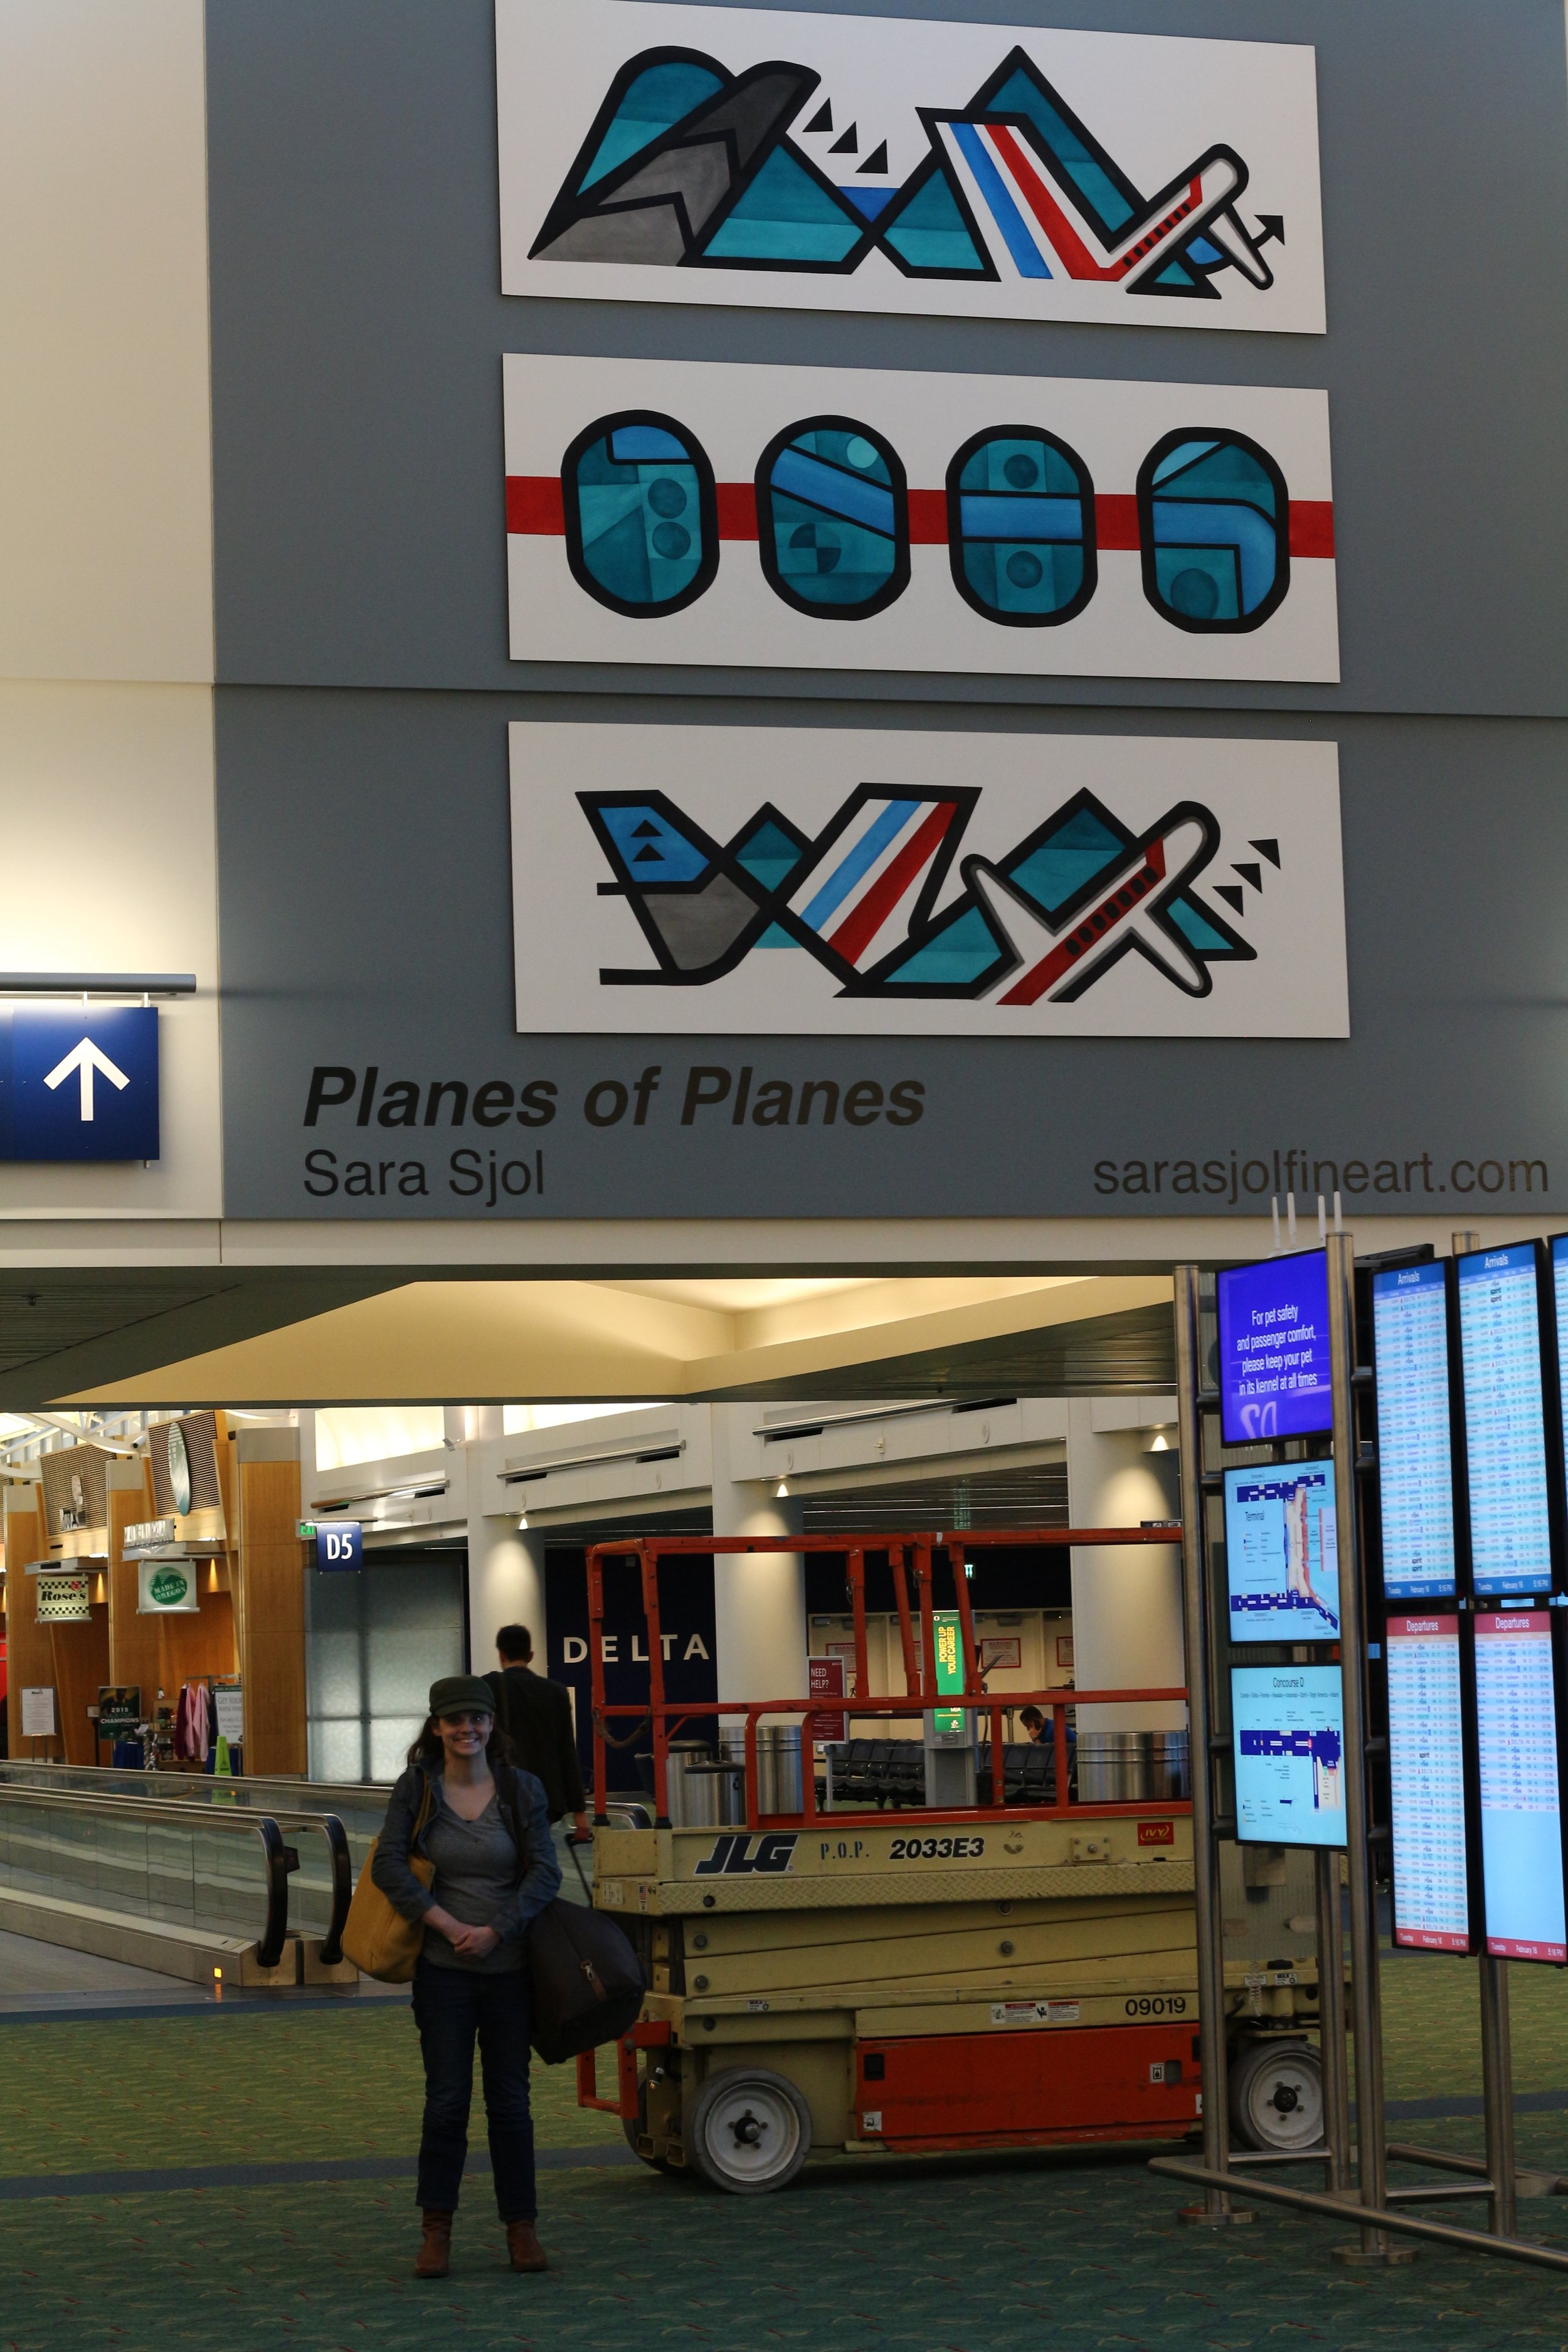 Artist Sara Sjol and   Planes of Planes